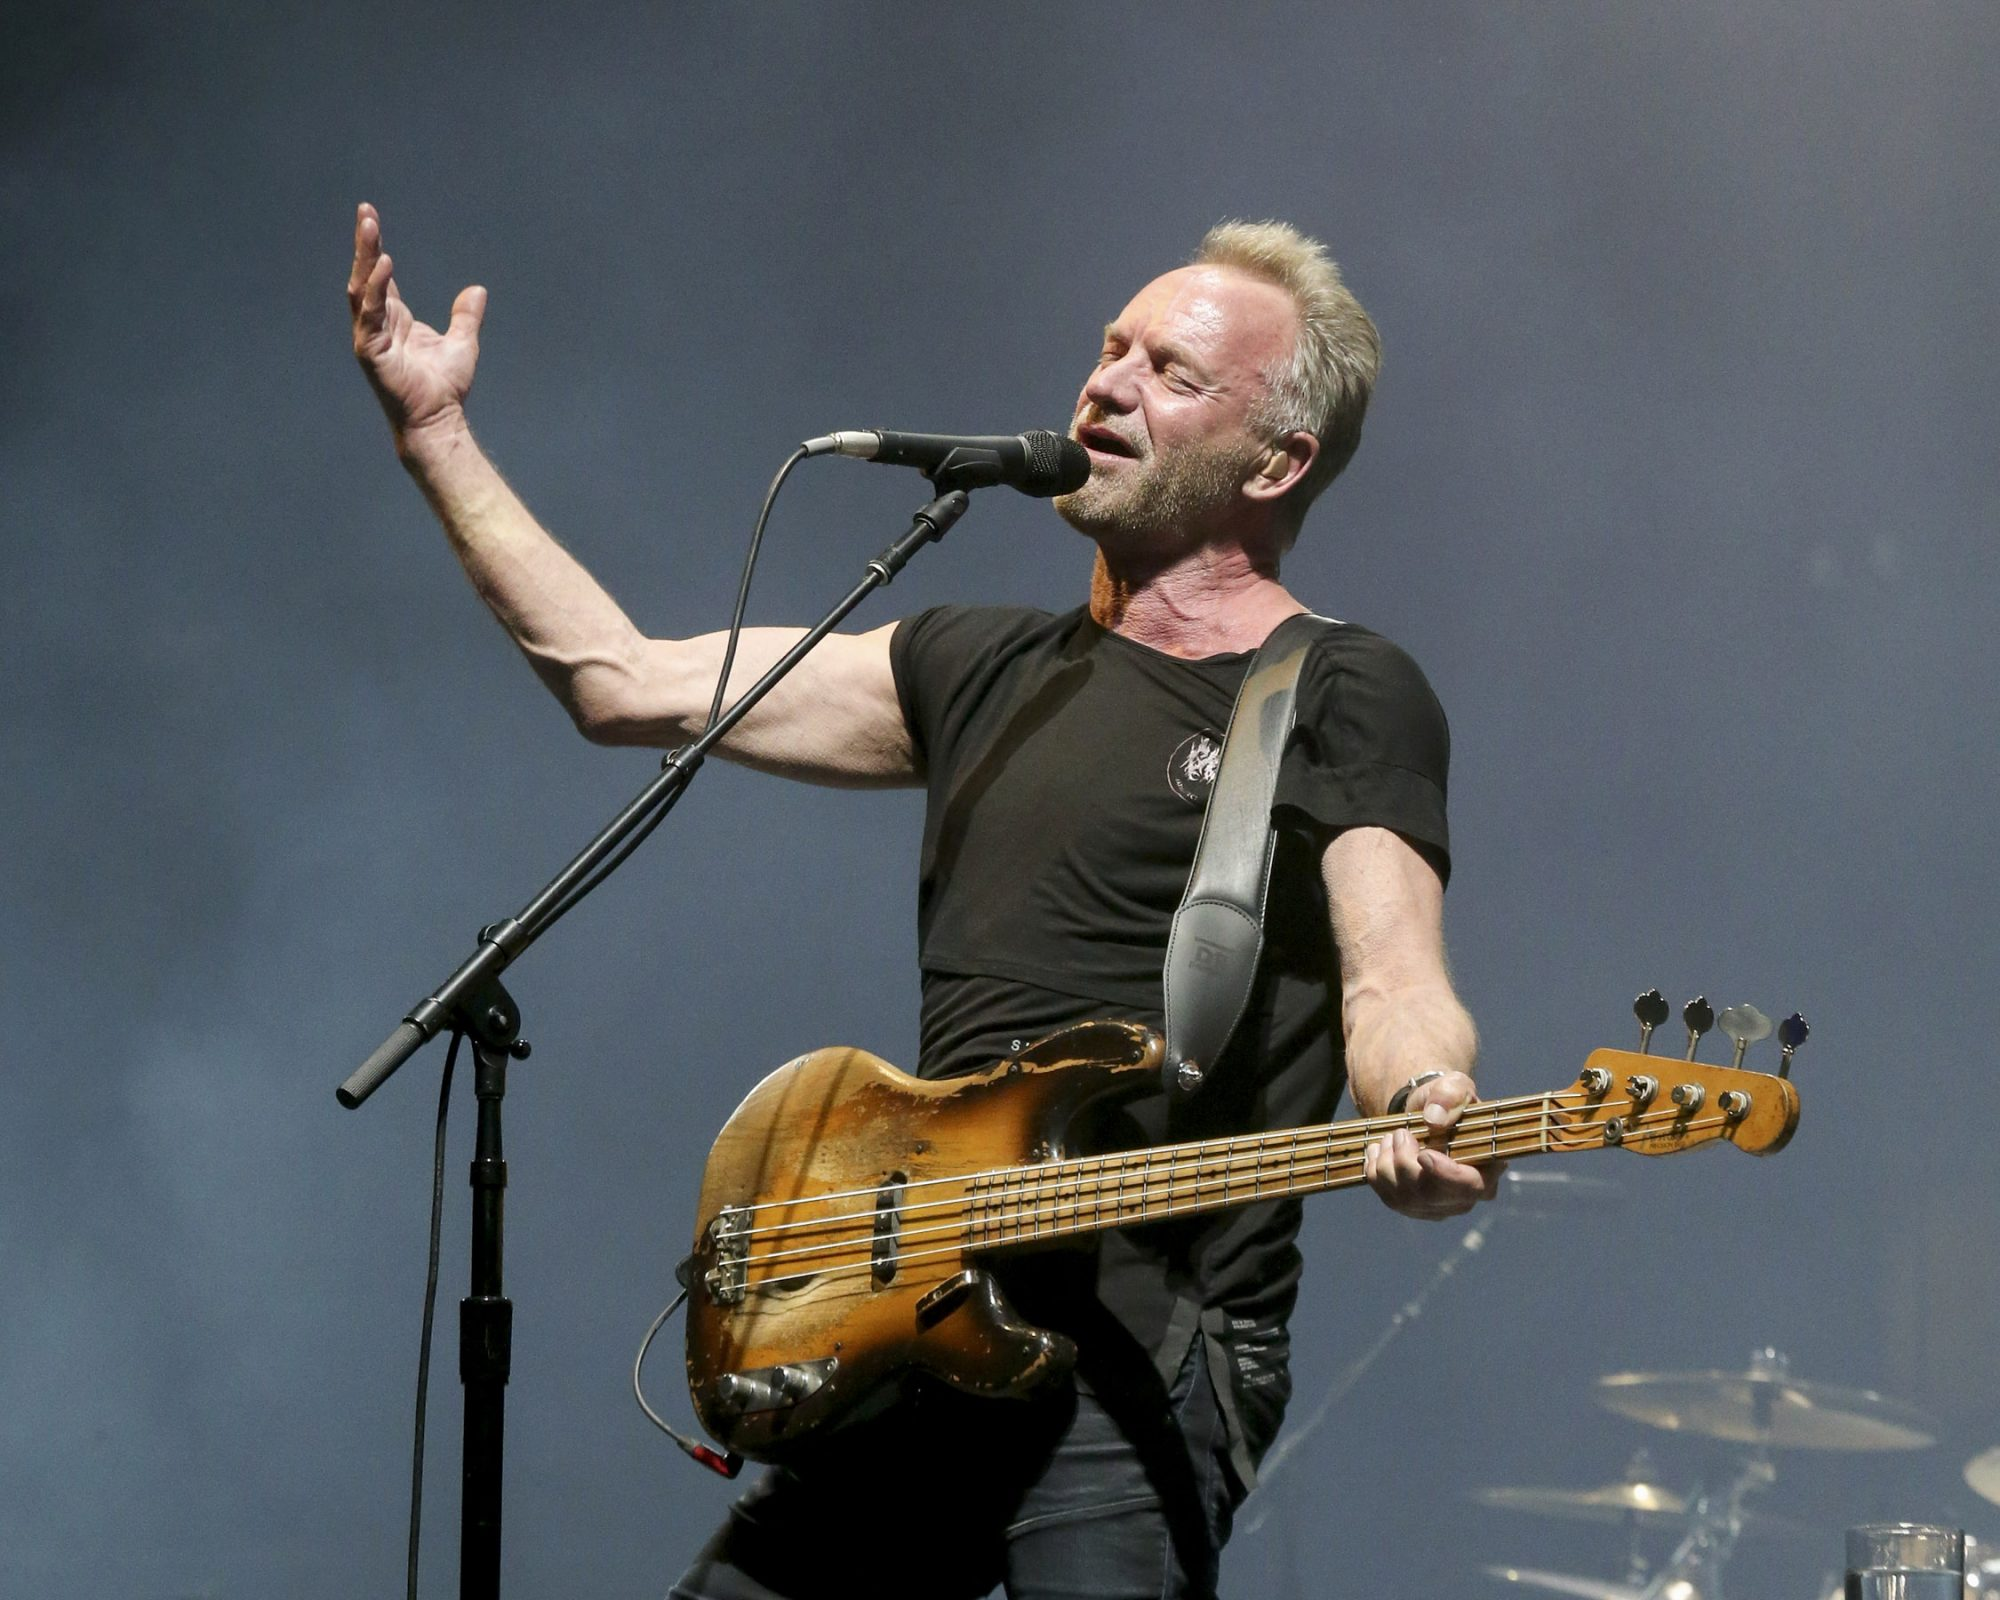 ARLINGTON, TEXAS - MAY 12: Sting performs in concert during day three of KAABOO Texas at AT&T Stadium on May 12, 2019 in Arlington, Texas. (Photo by Gary Miller/Getty Images)